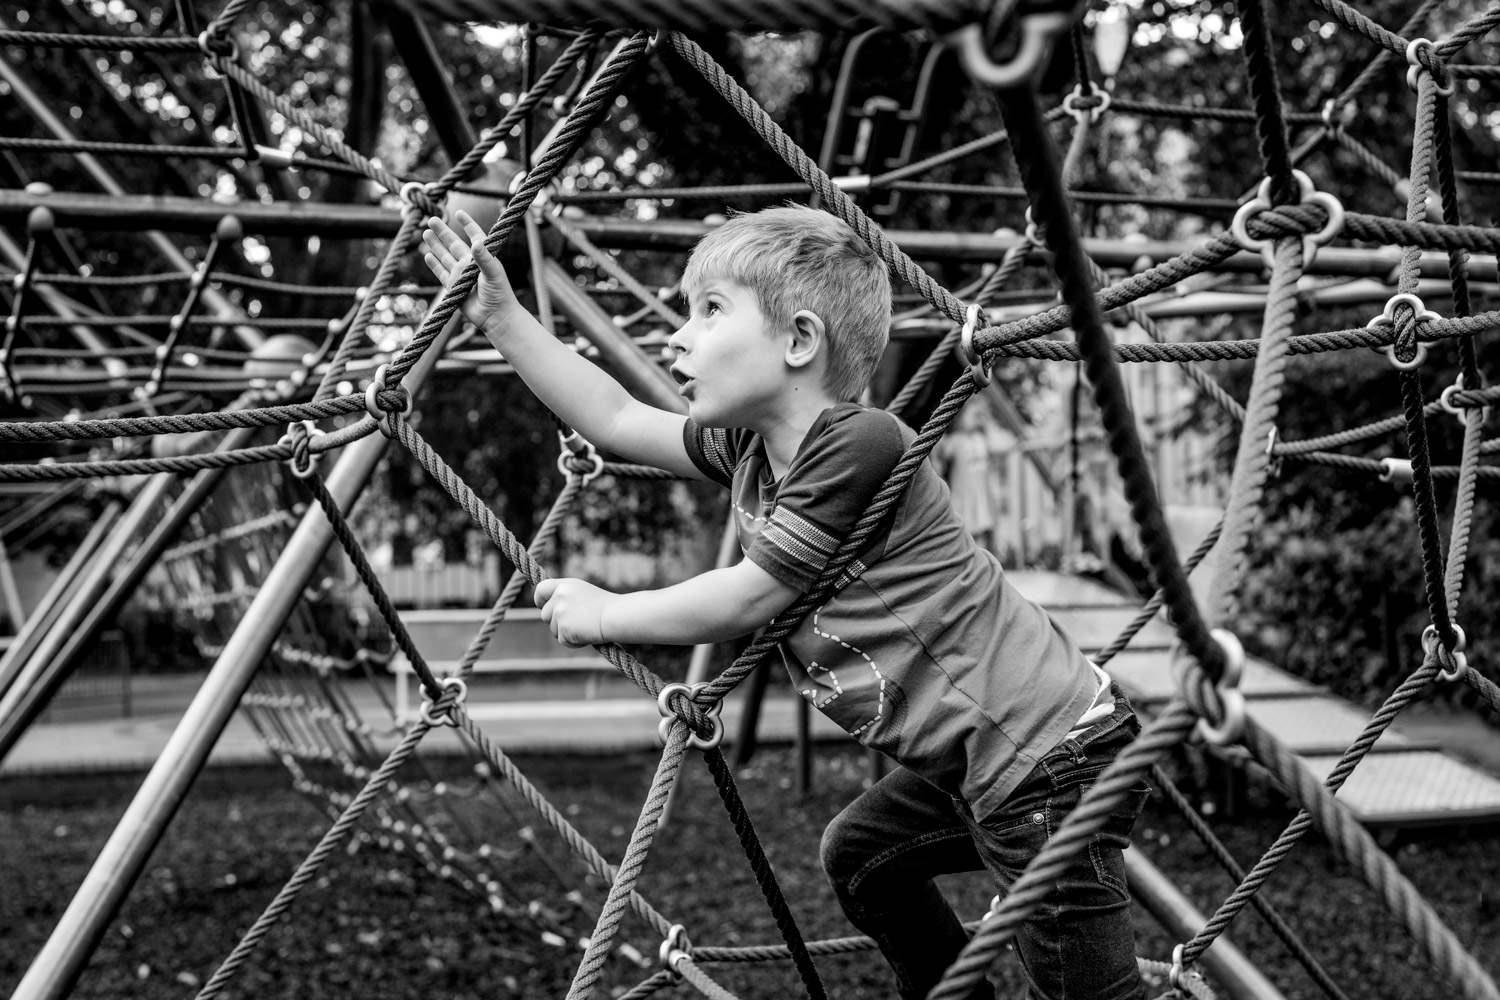 Boy framed by climbing ropes as he climbs